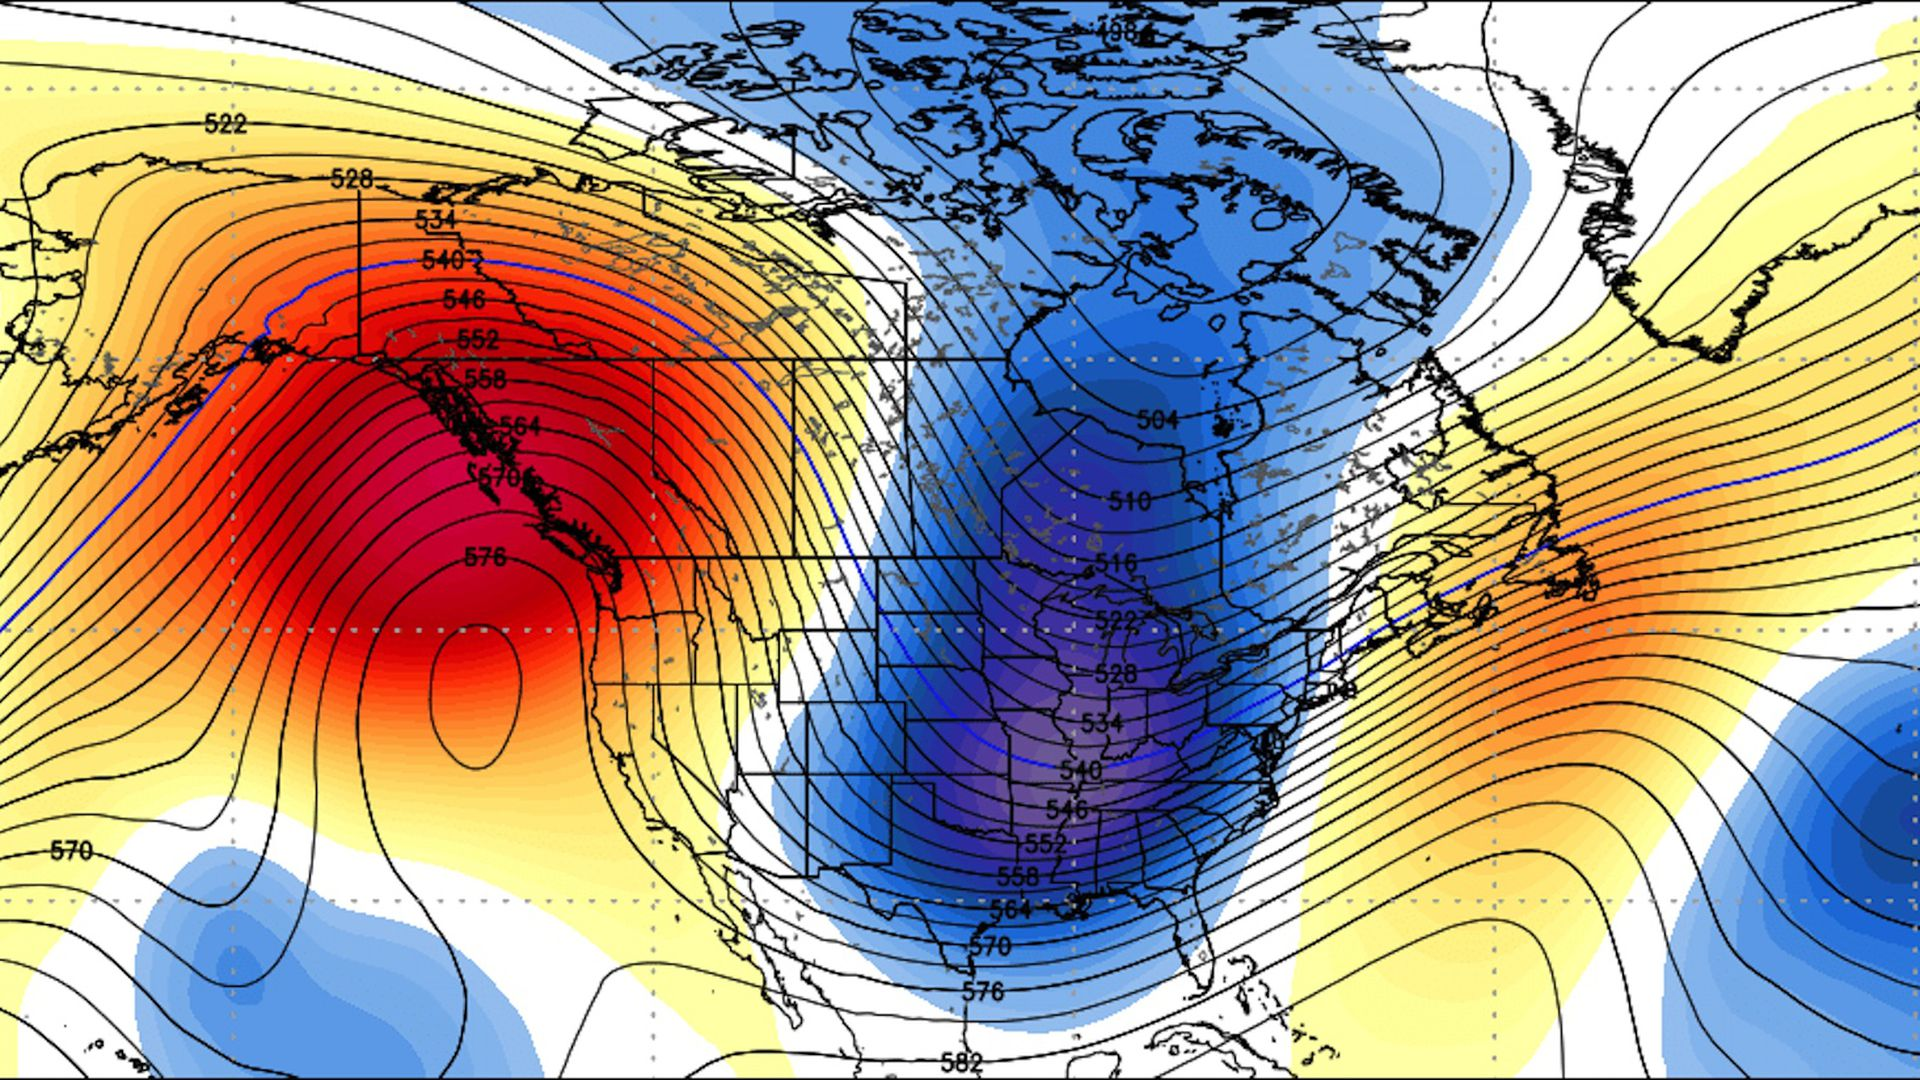 The polar vortex has split, sending frigid air howling into the U.S. and Europe